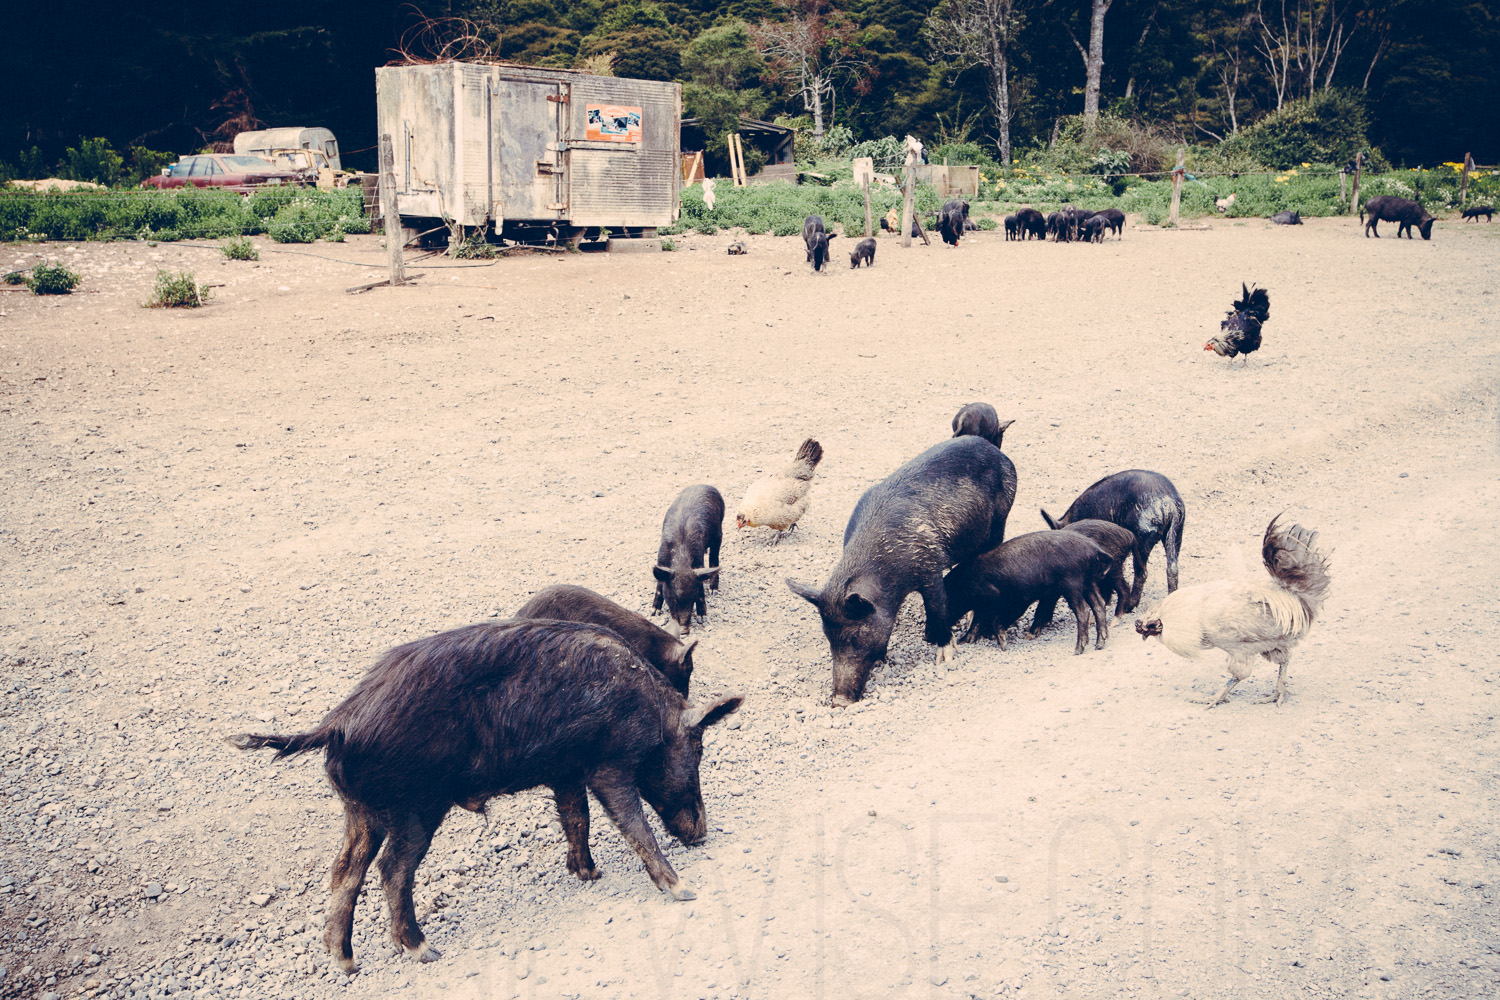 pigs & chickens on the 309 road, coromandel, new zealand